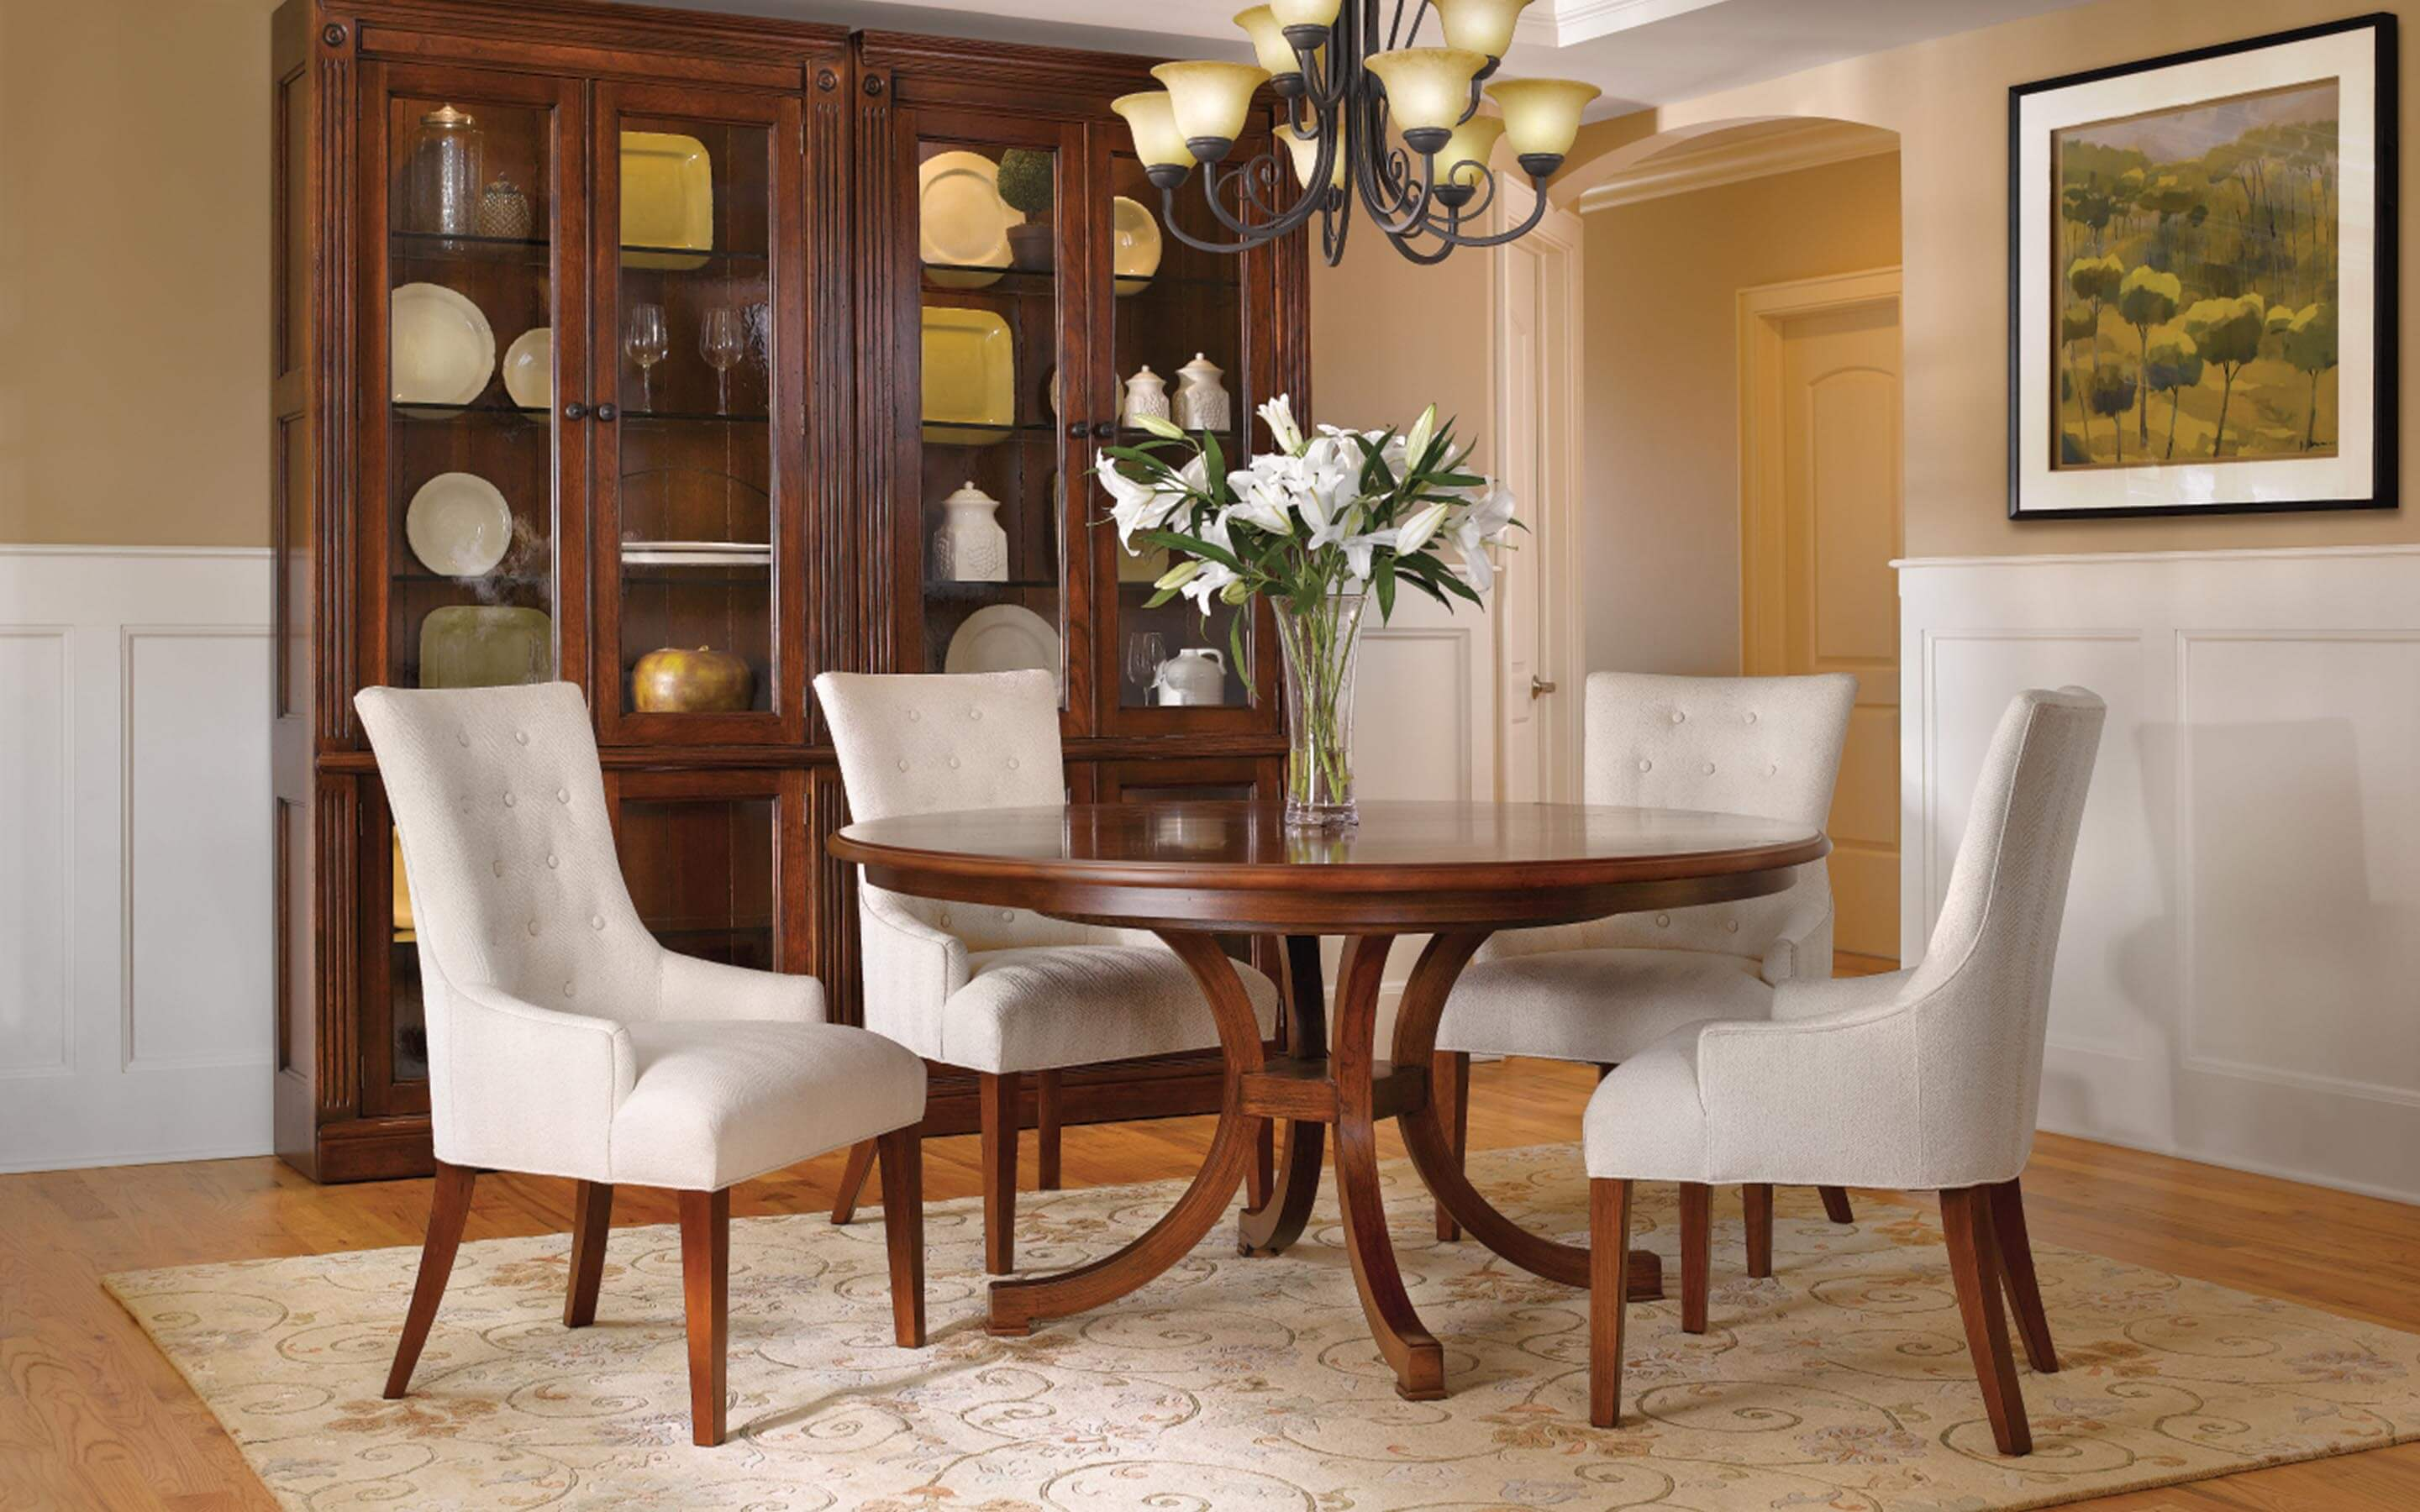 Image of dining room set from Reid's furnishing.